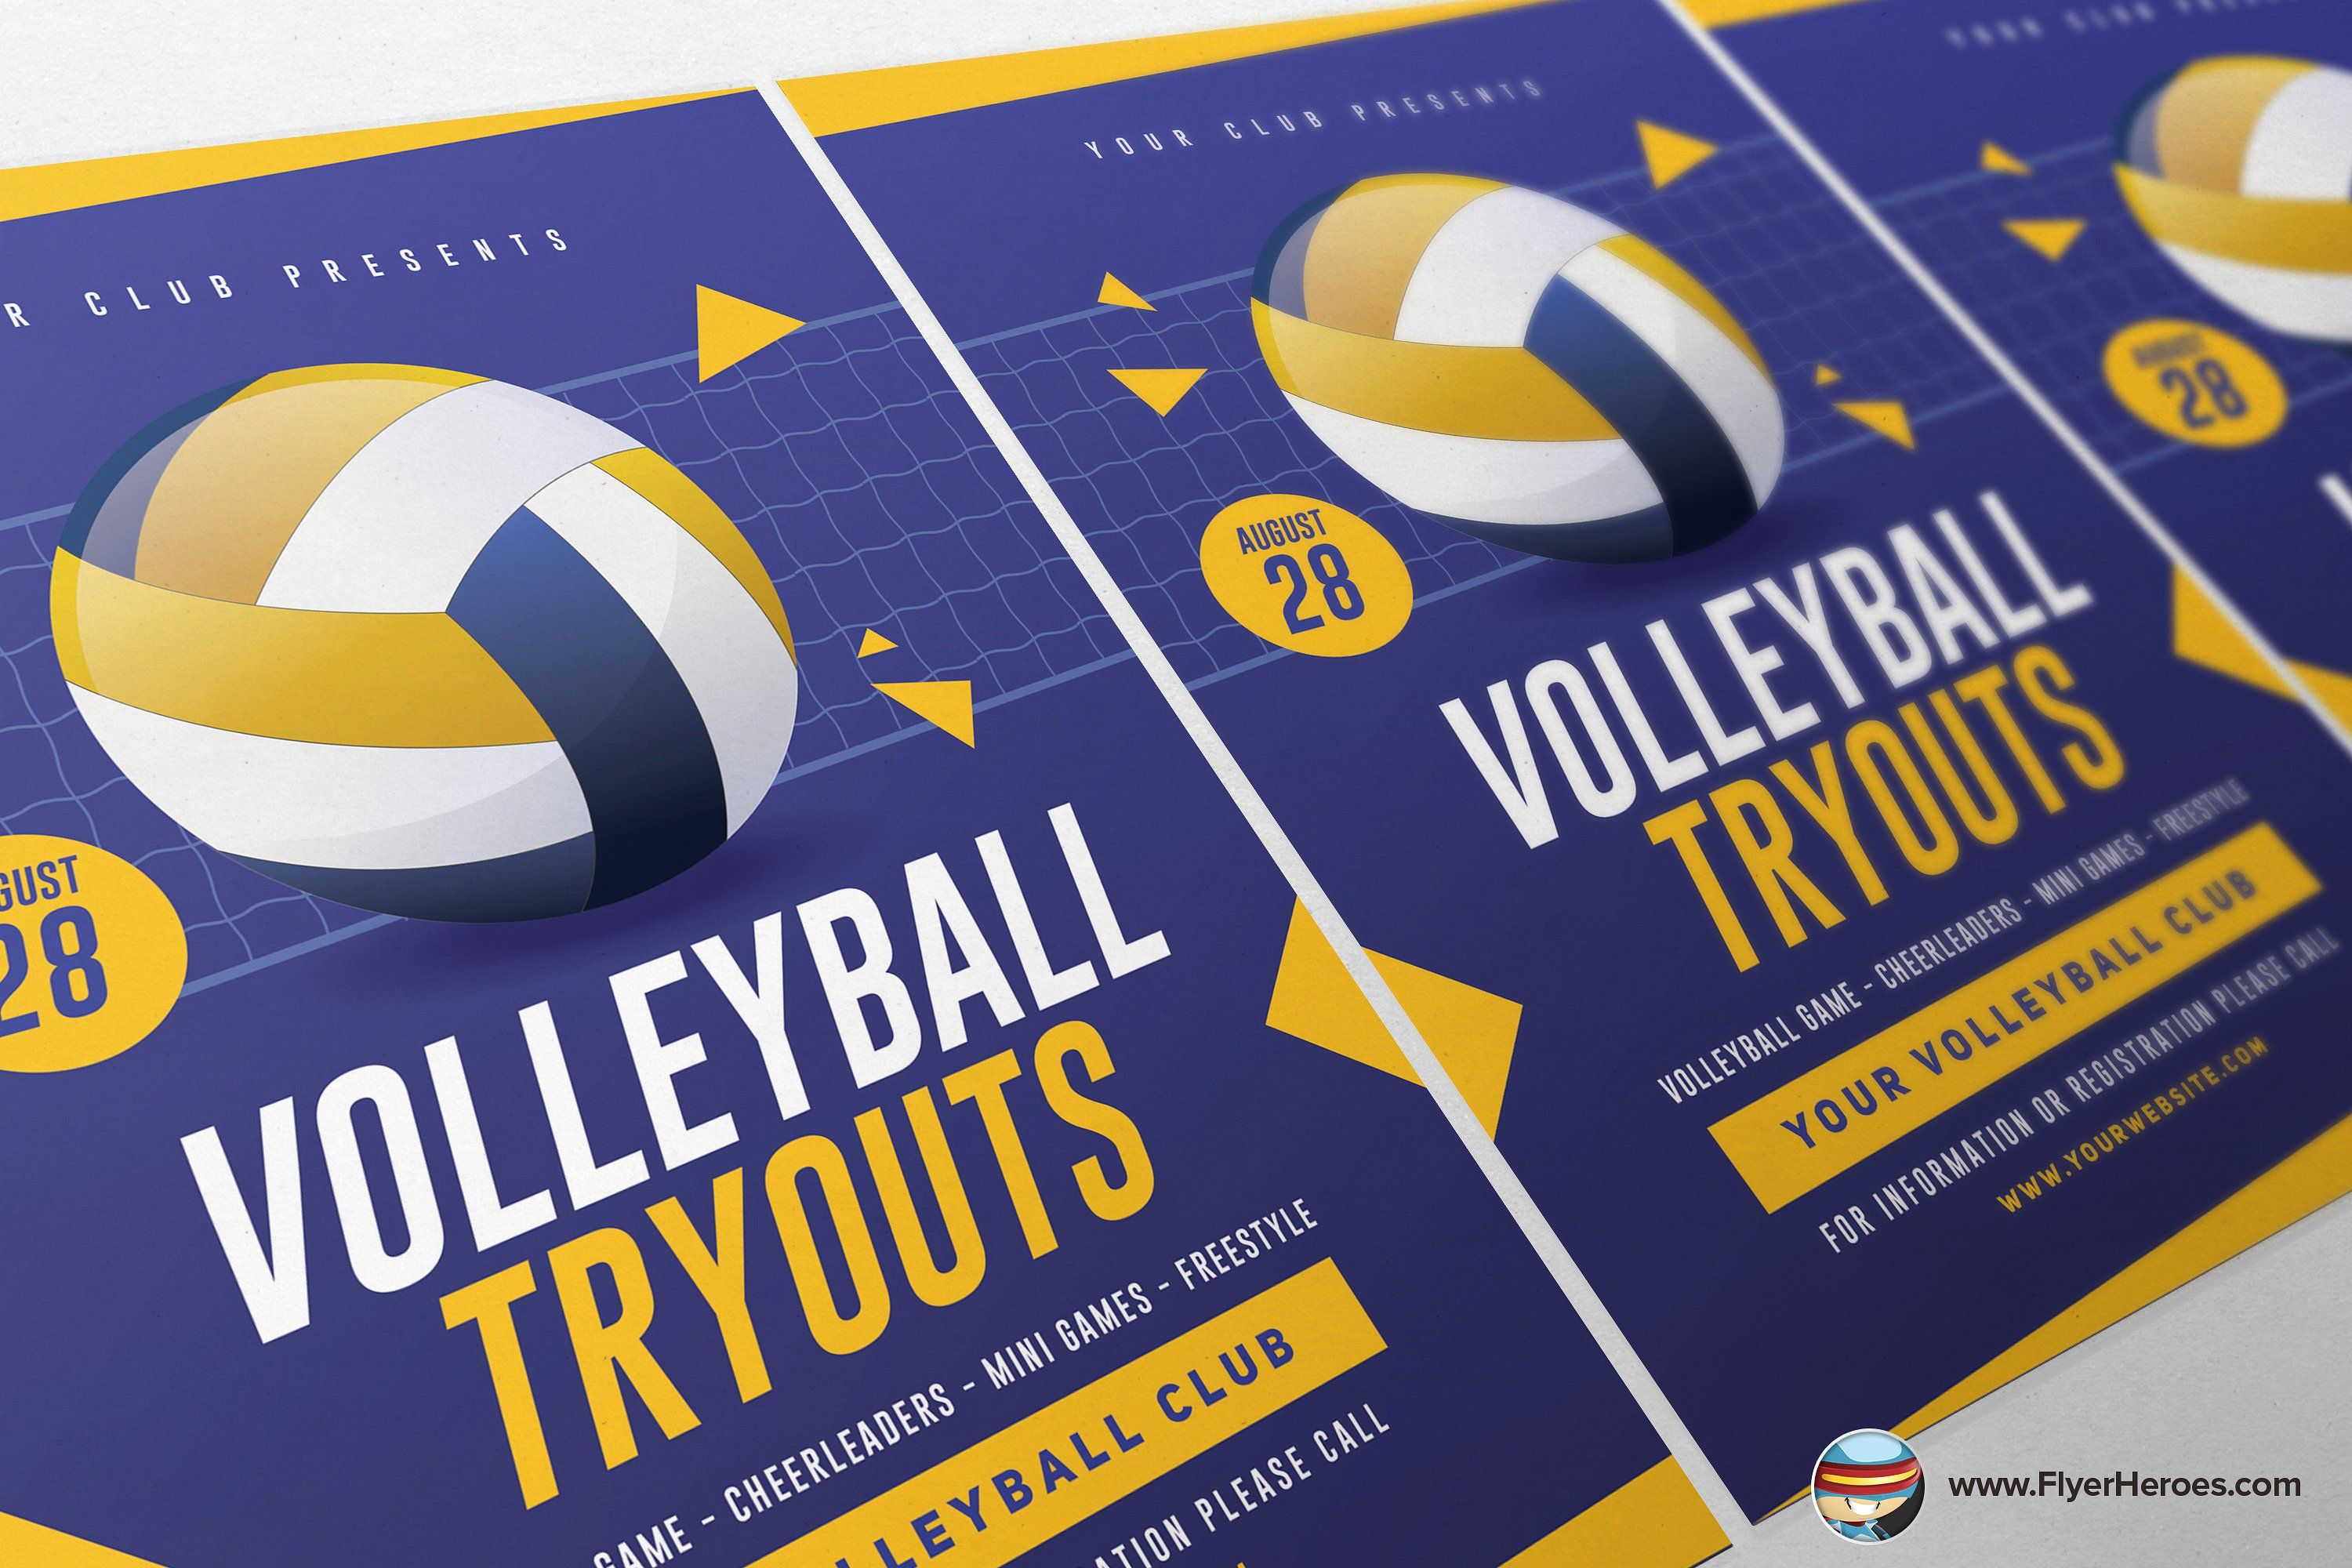 Volleyball Tryouts Flyer Template Information General Tryouts Volleyball Flyer Template Flyer Templates